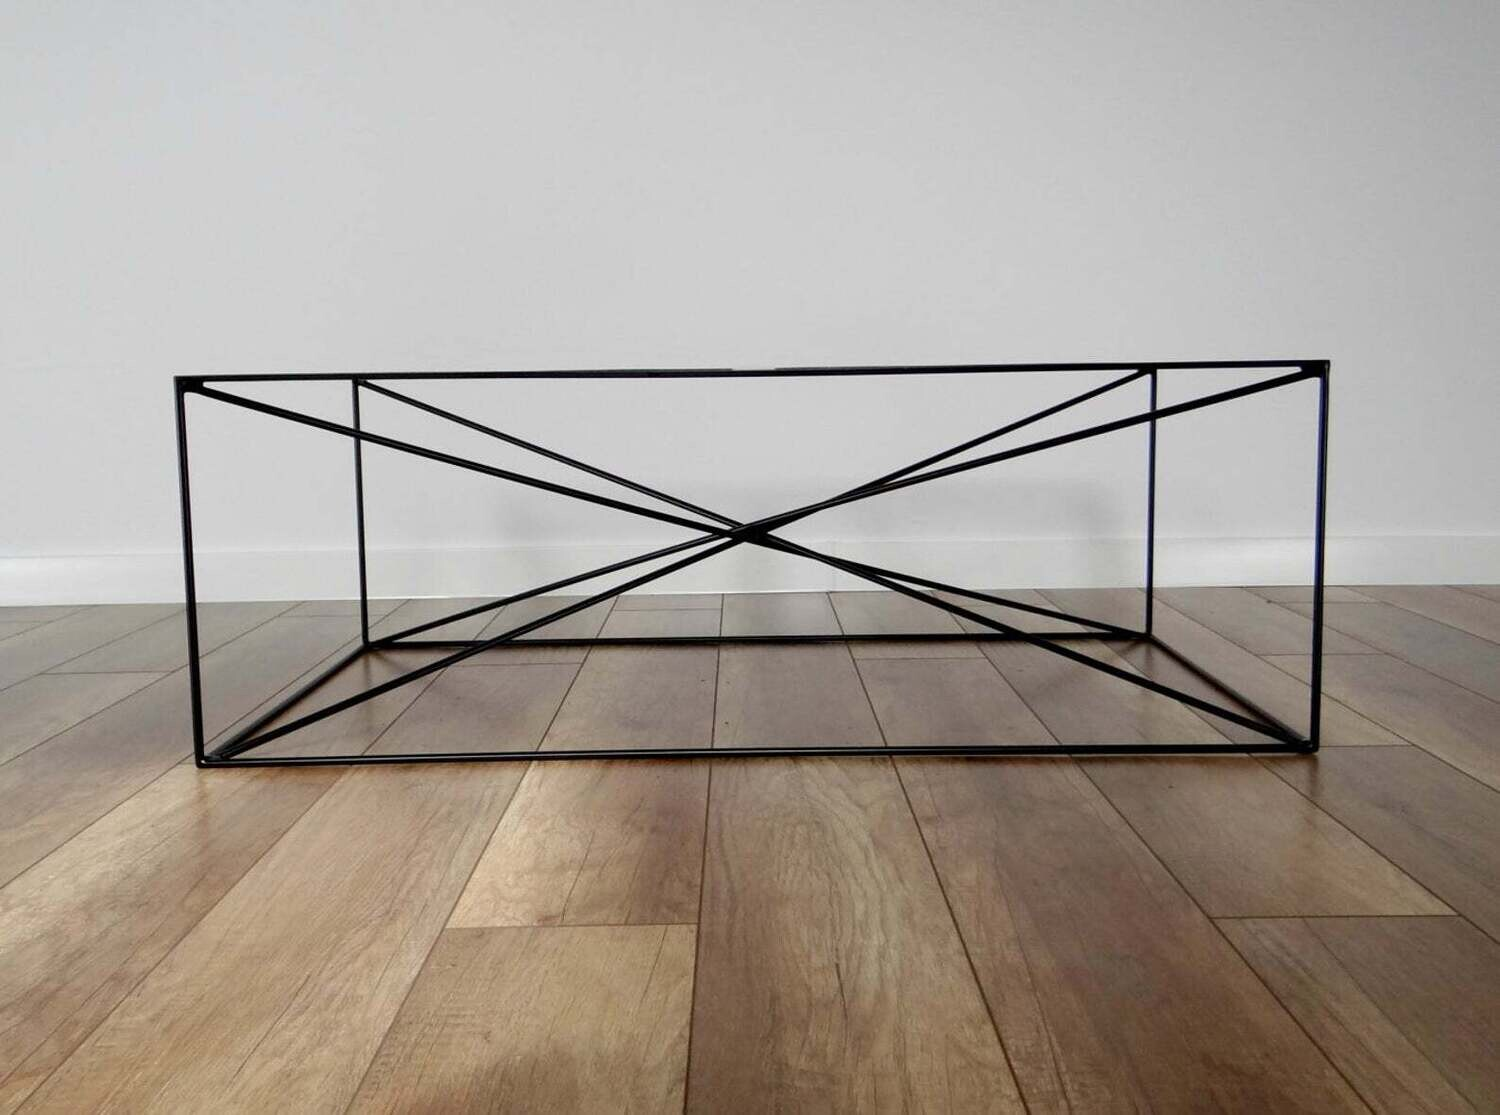 SPIDER Steel Coffee Table Base 100x60cm. Large Modern Coffee Table Legs. Black Metal Coffee Table Legs. Industrial from StaloveStudio. [D075]